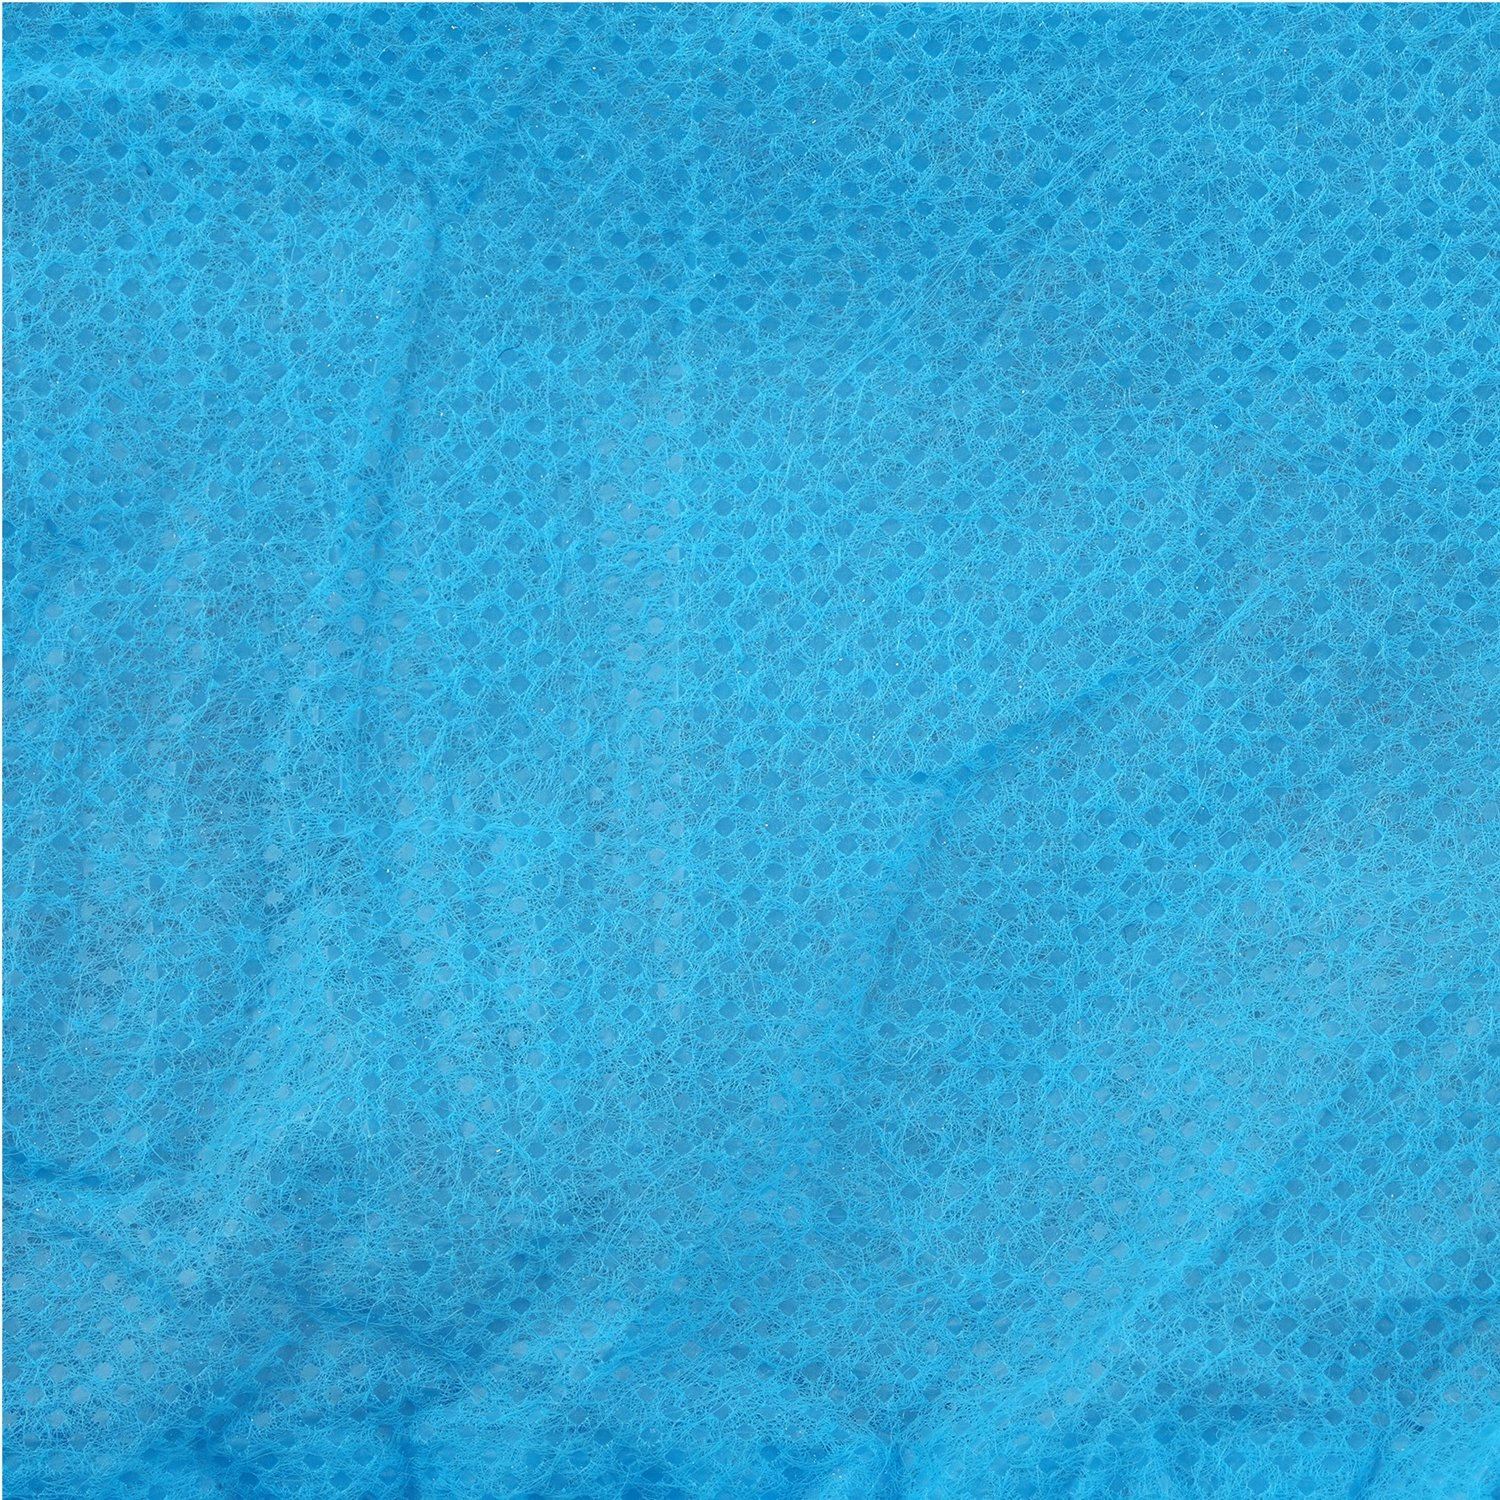 MIFFLIN Disposable Shoe Covers (Blue, 120 Pieces) Durable Boot Covers, Non-Slip Polypropylene, One Size Fits Most by MIFFLIN (Image #2)